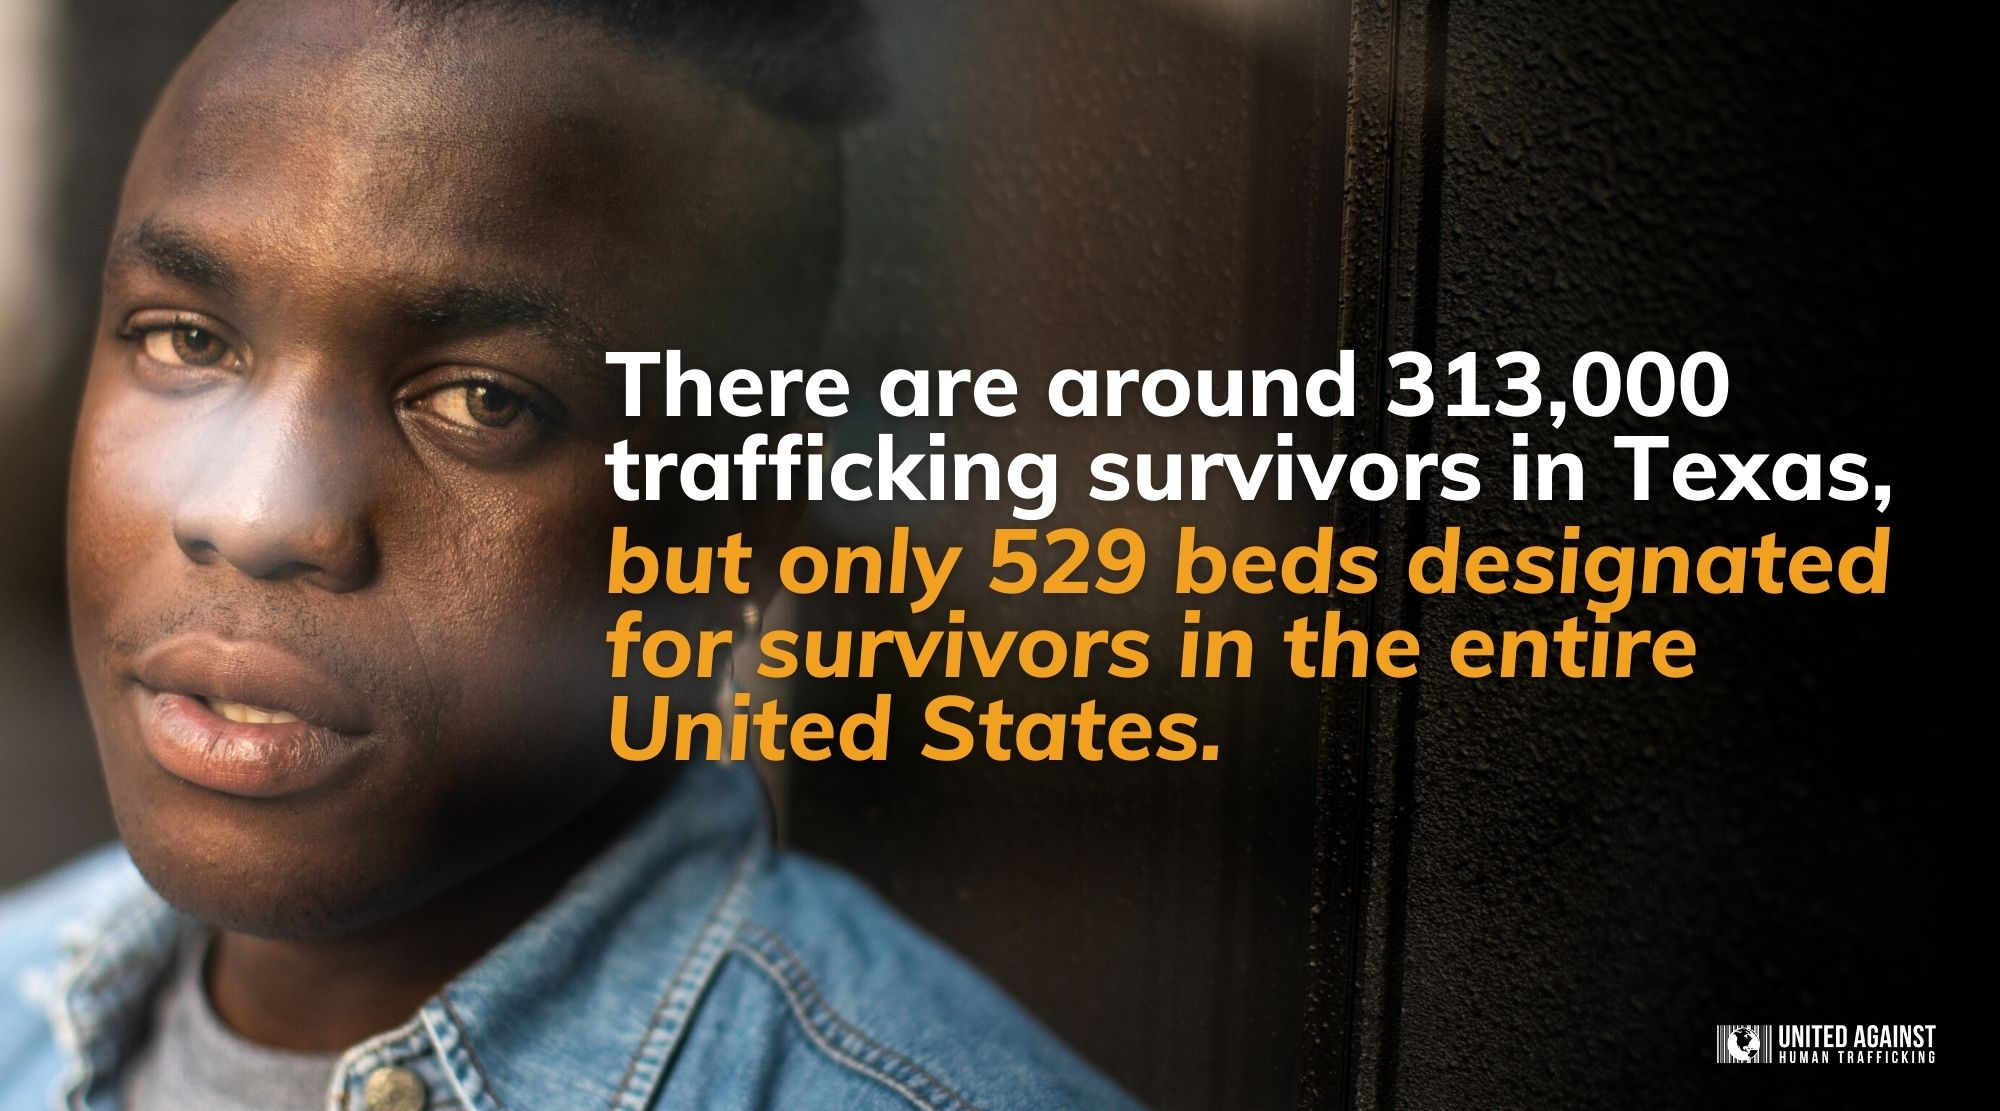 There are around 313,000 trafficking survivors in Texas, but only 529 beds designated for survivors in the entire United States